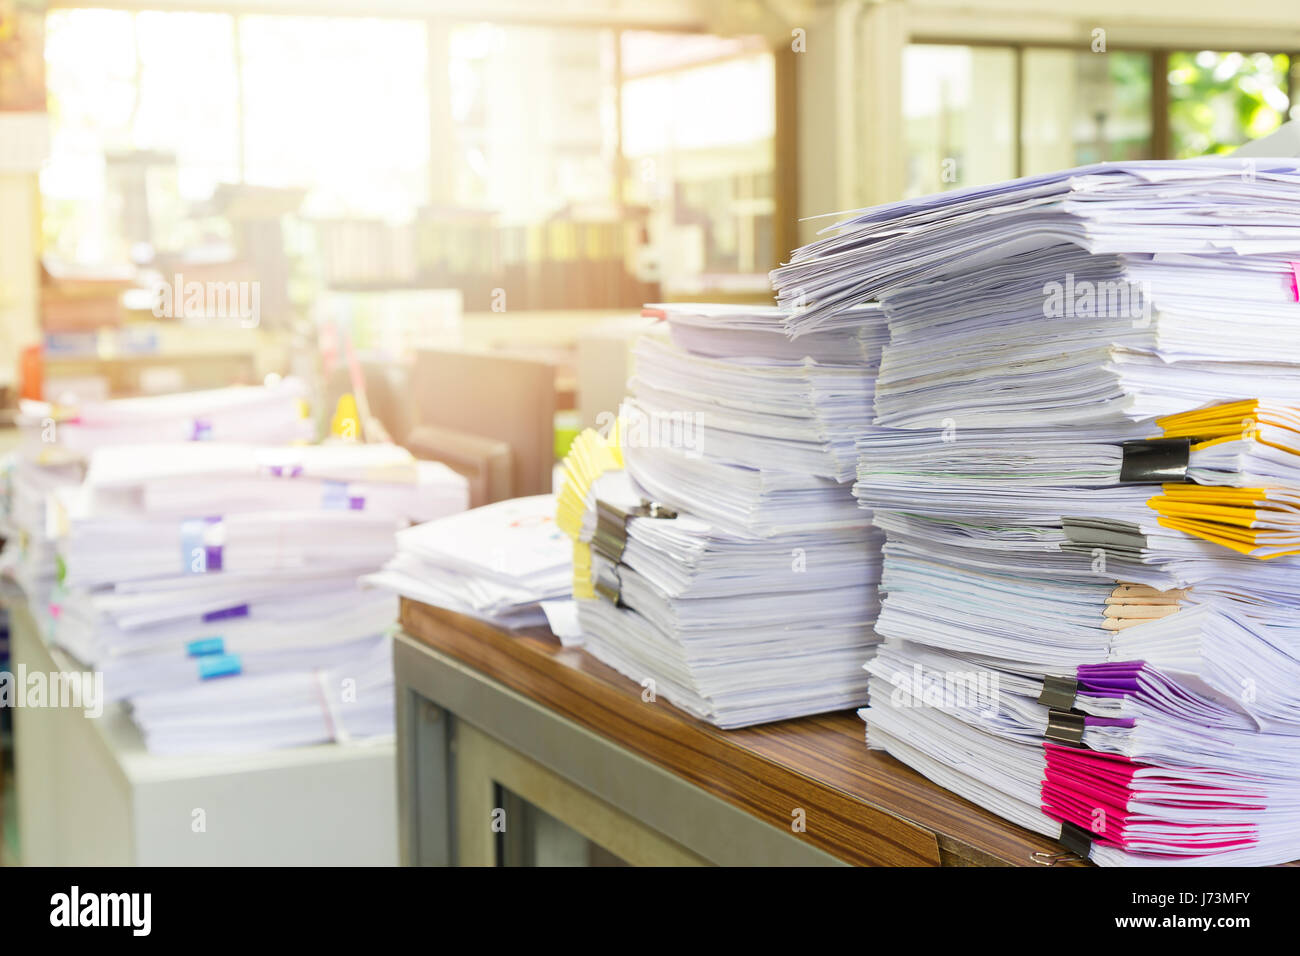 Pile of unfinished documents on office desk, Stack of business paper - Stock Image